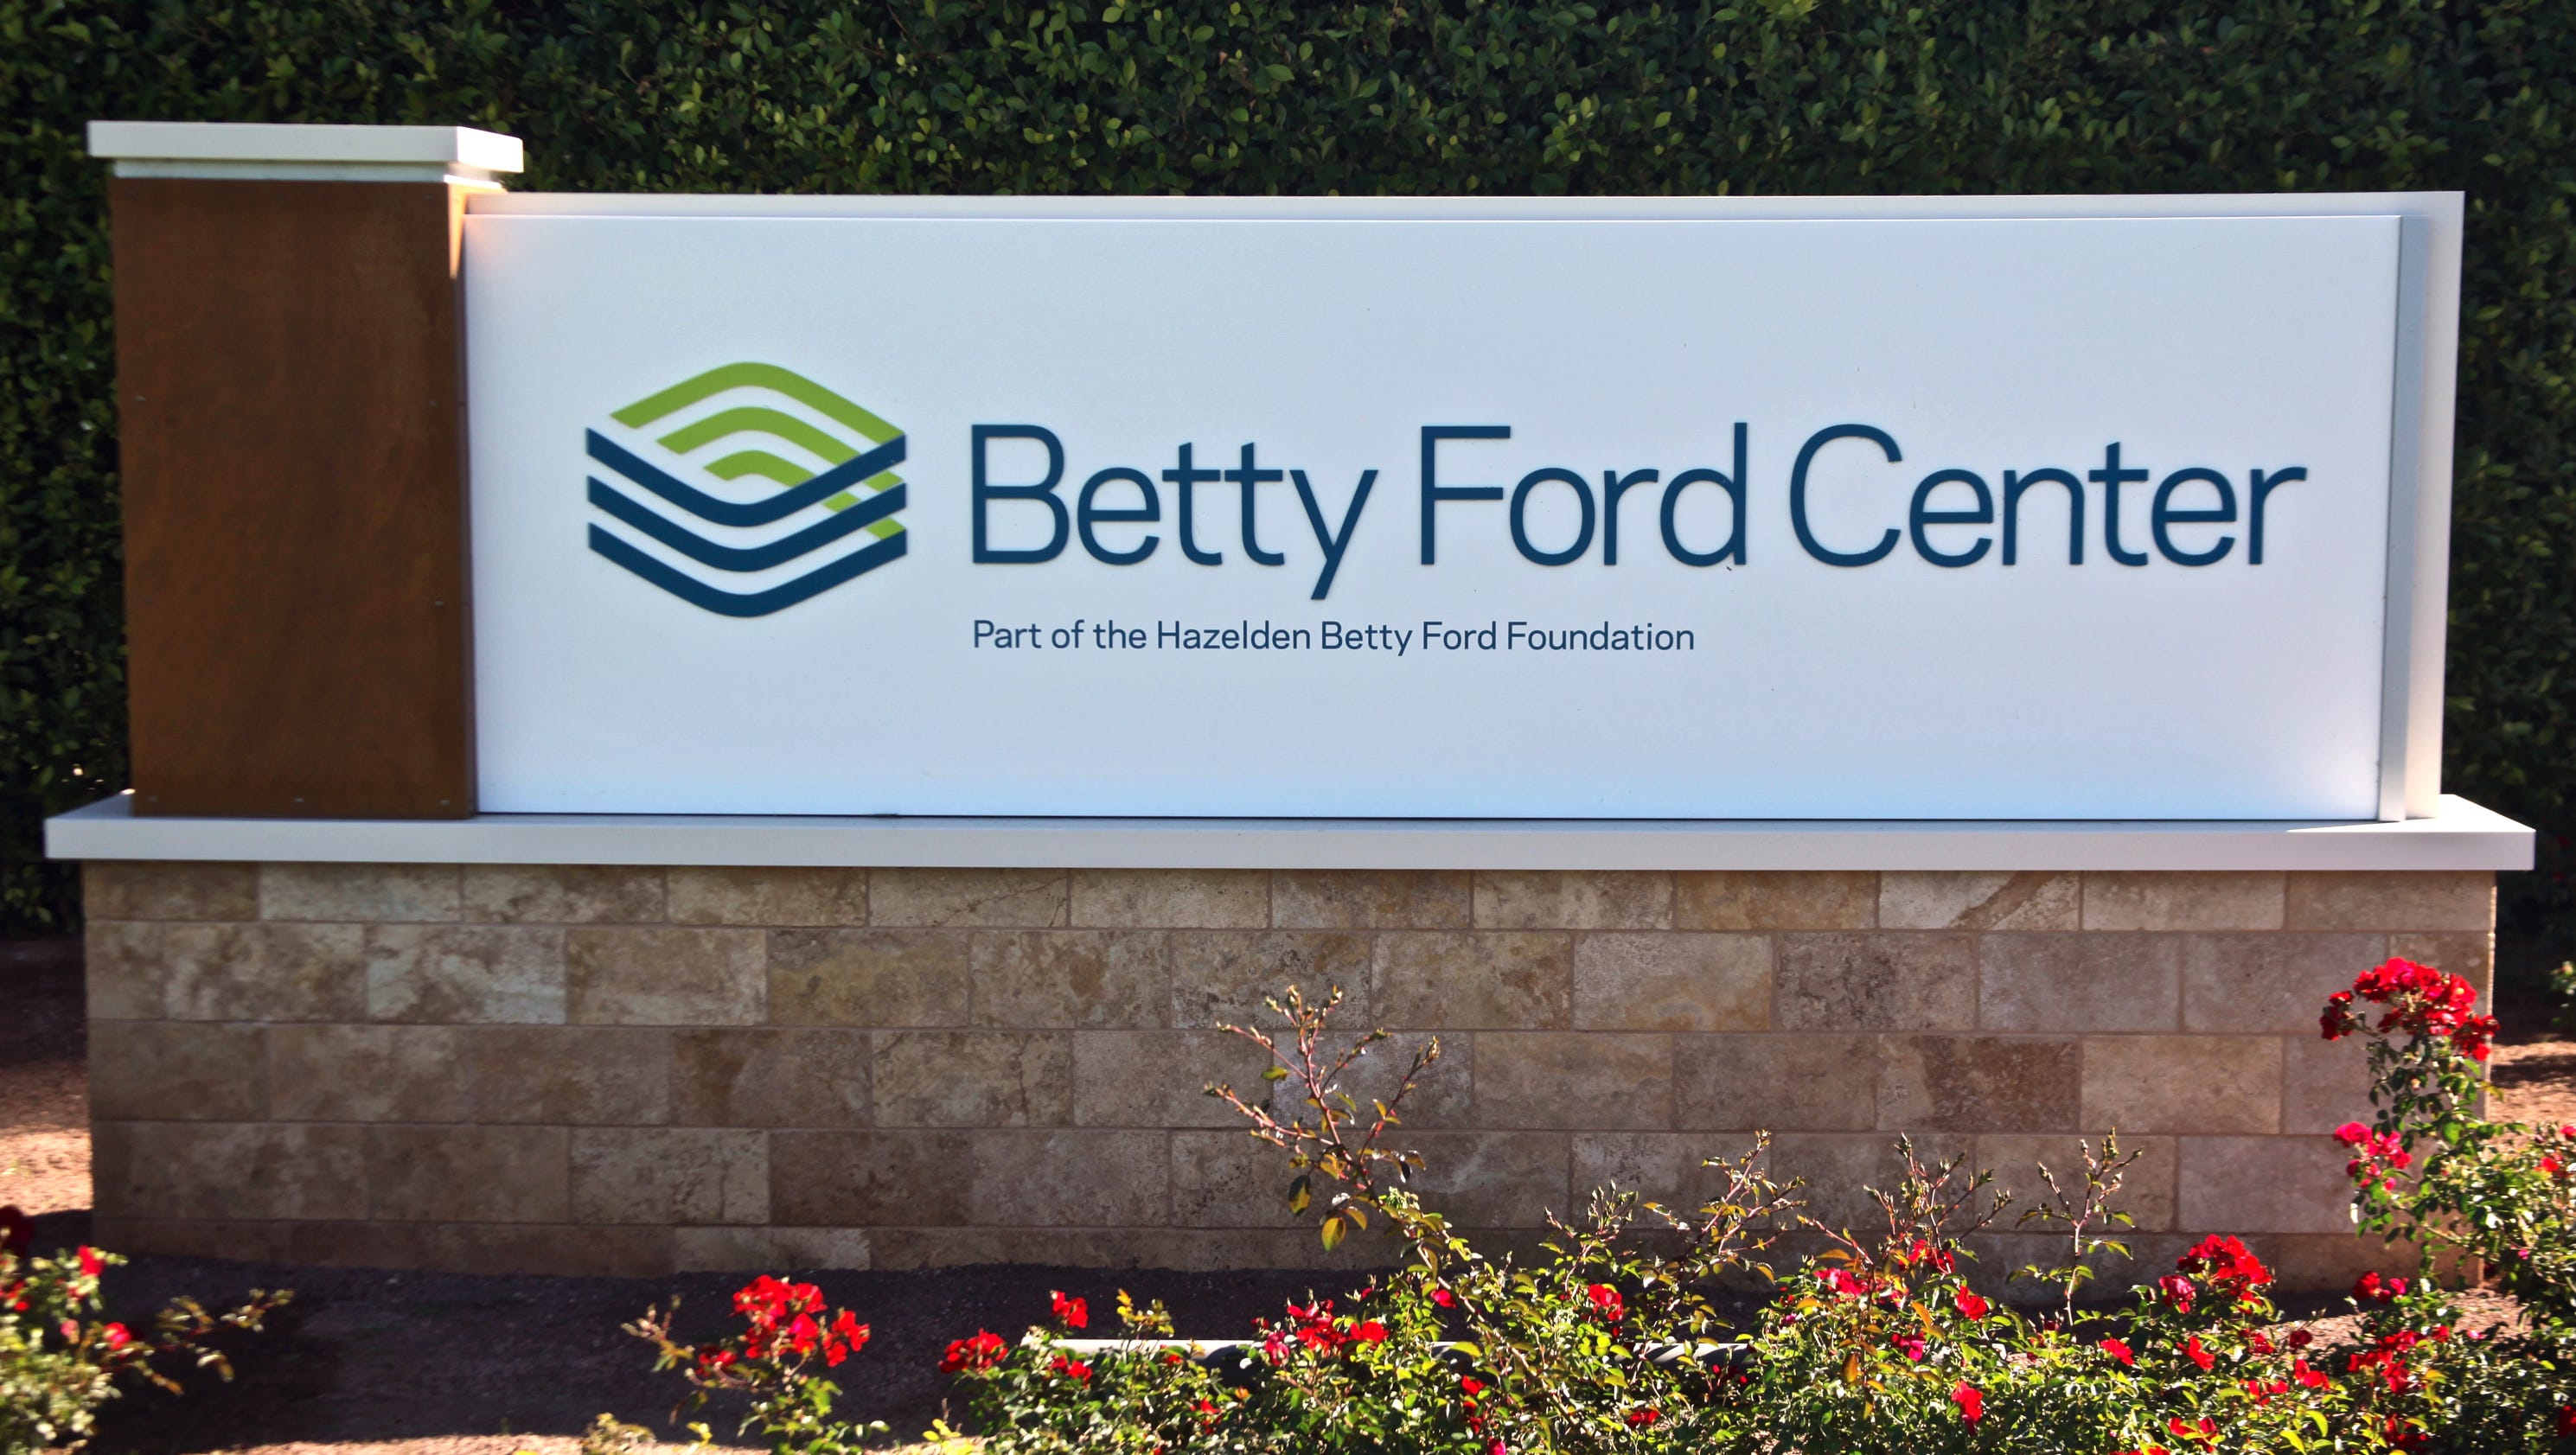 Betty Ford Center Cuts Staff As Part Of Hazelden Plan